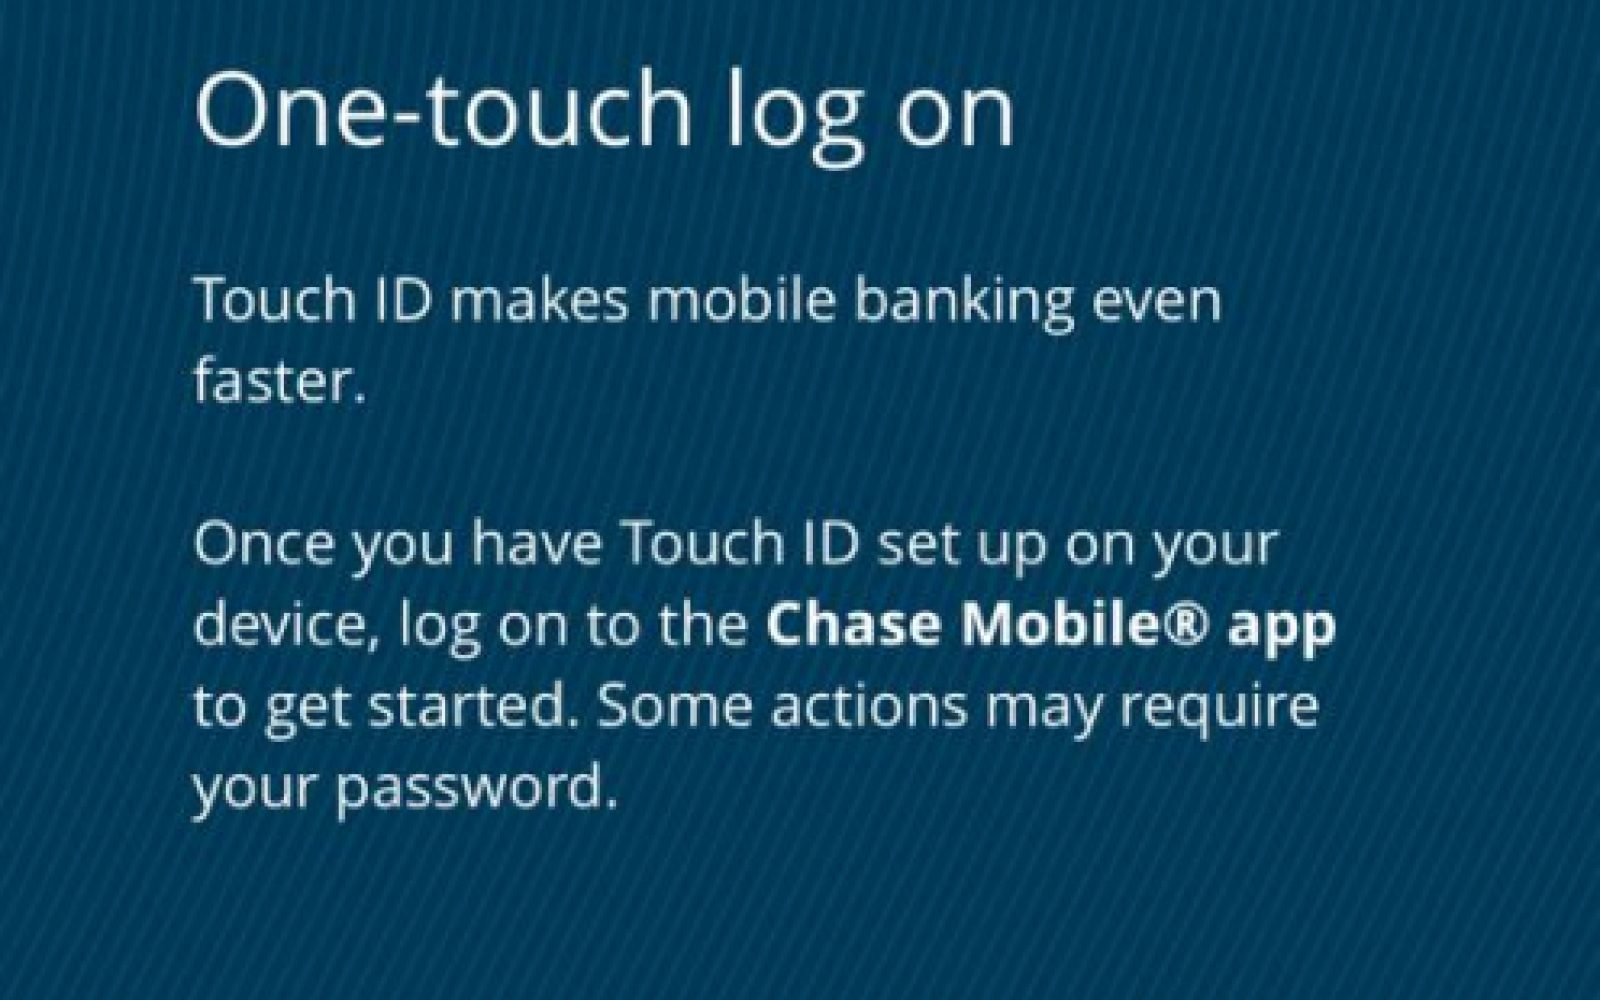 Chase Bank iPhone app now lets you log in with Touch ID - 9to5Mac